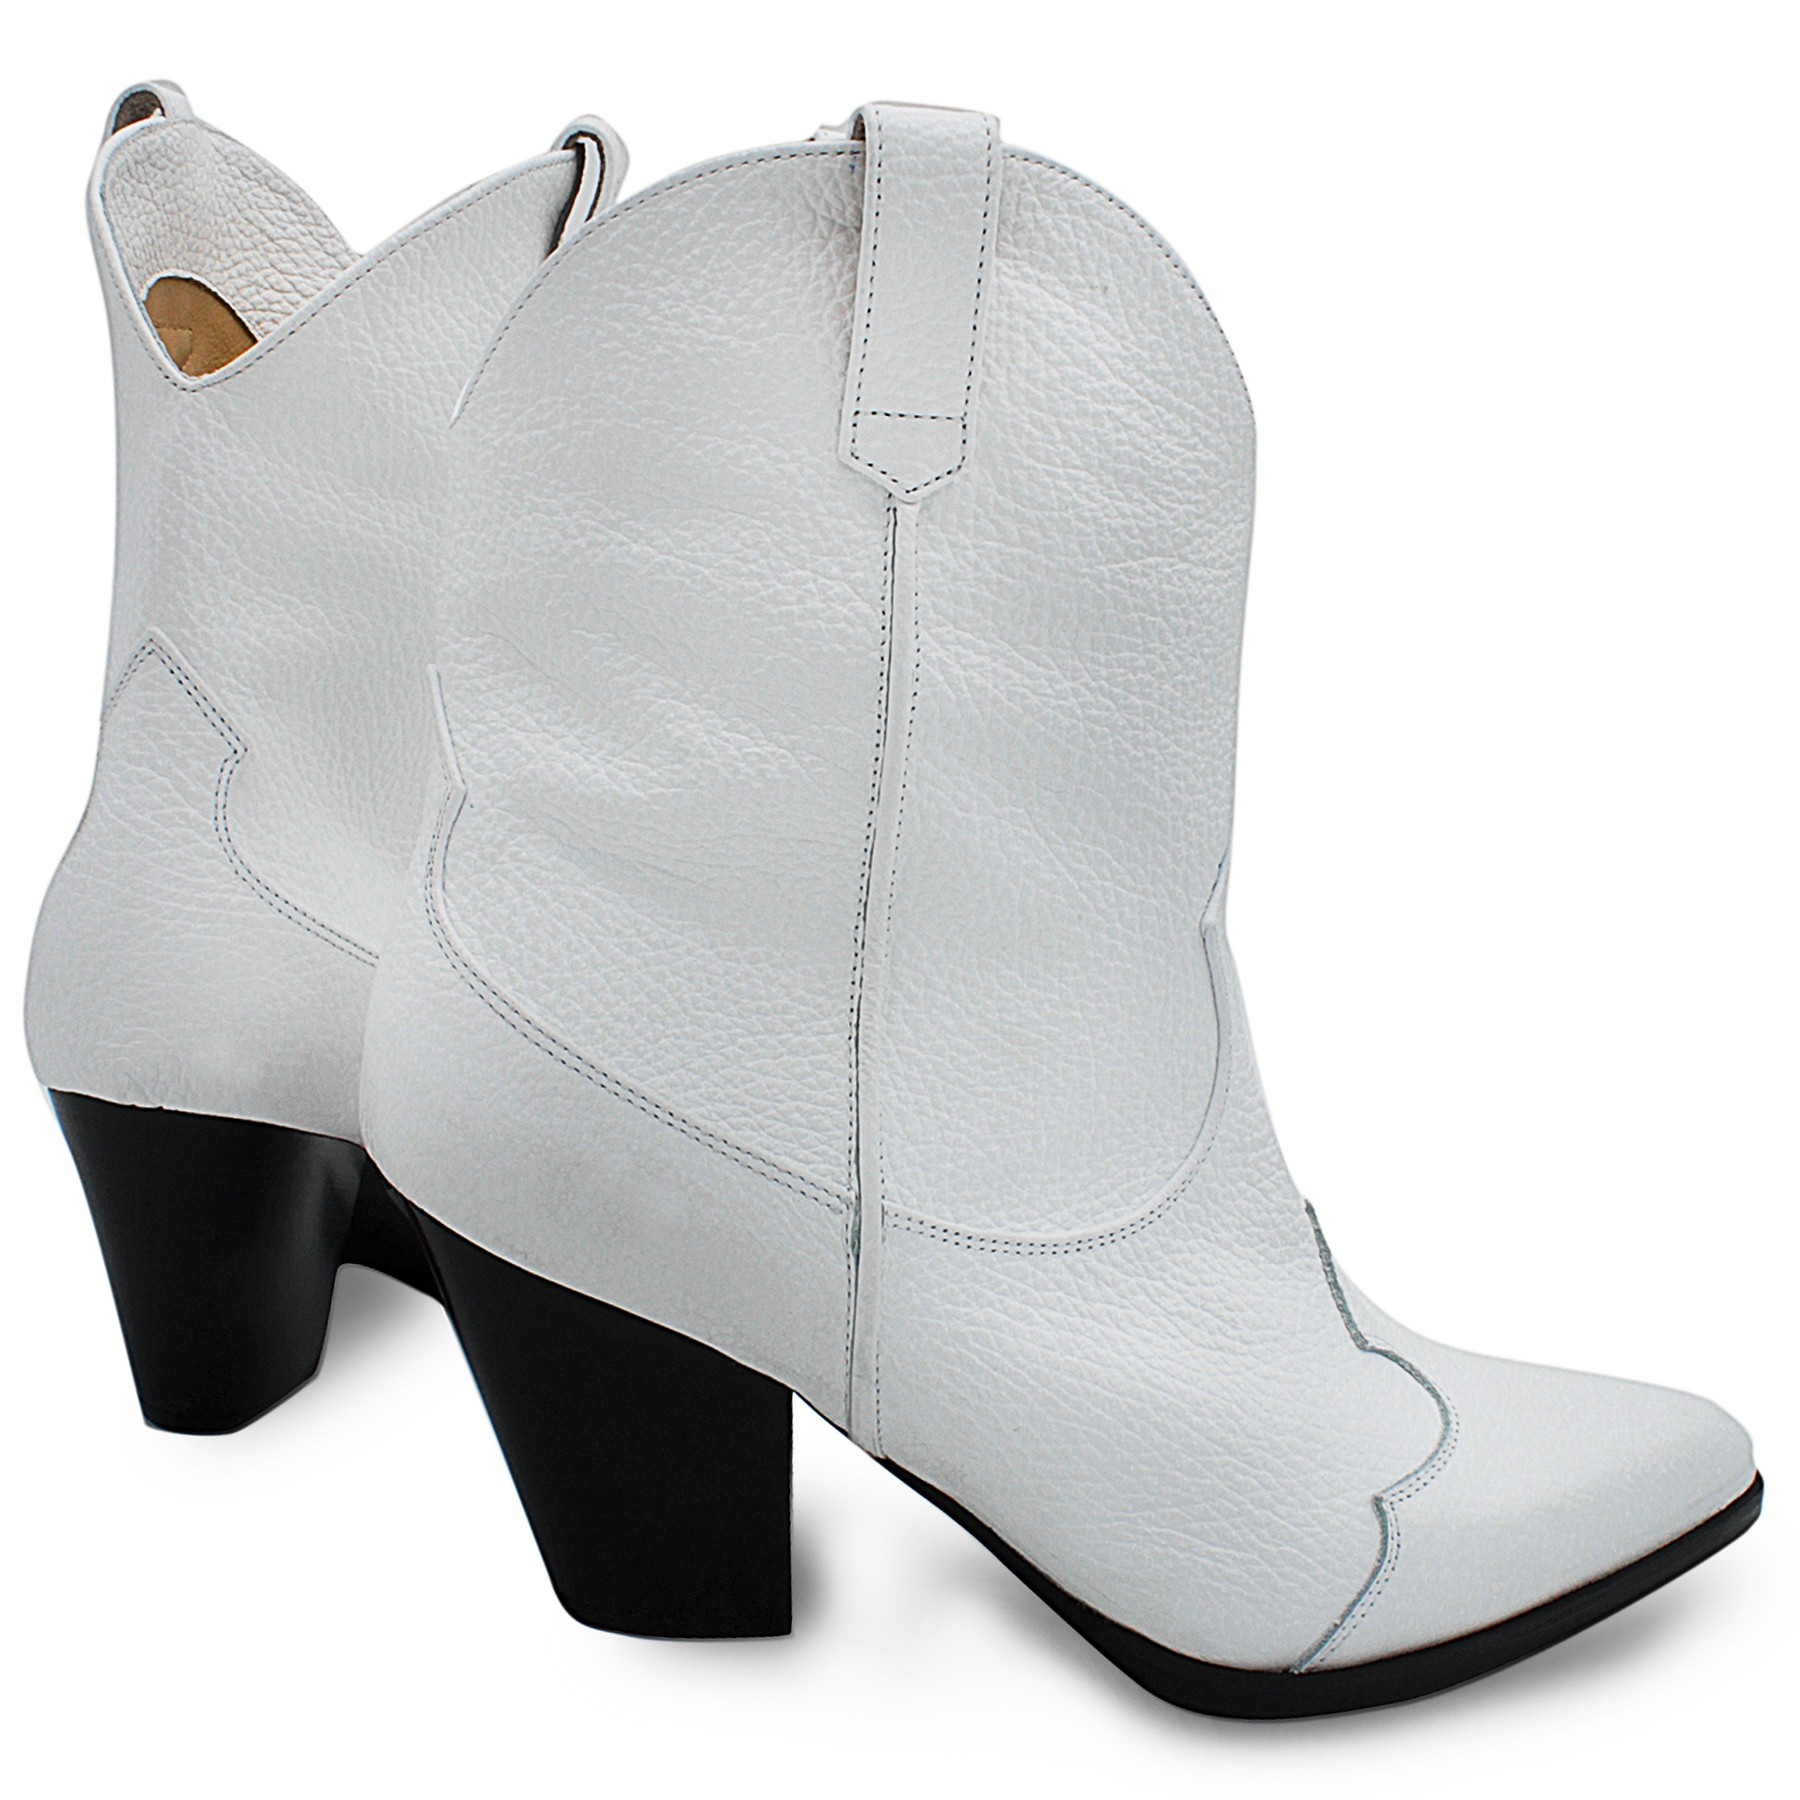 WHITE COWBOY-STYLE ANKLE BOOTS